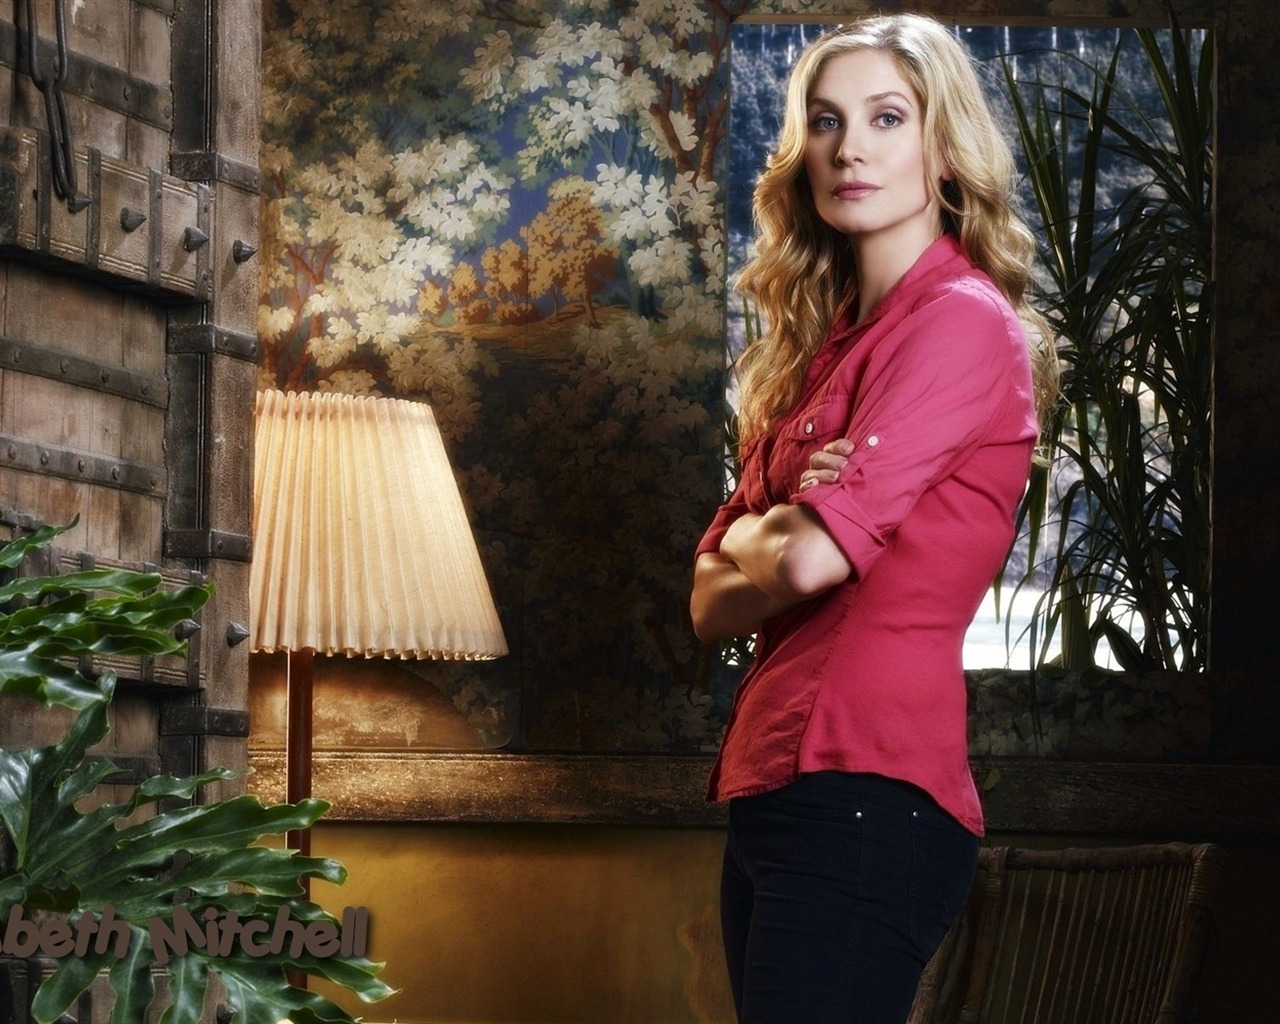 Elizabeth Mitchell #009 - 1280x1024 Wallpapers Pictures Photos Images